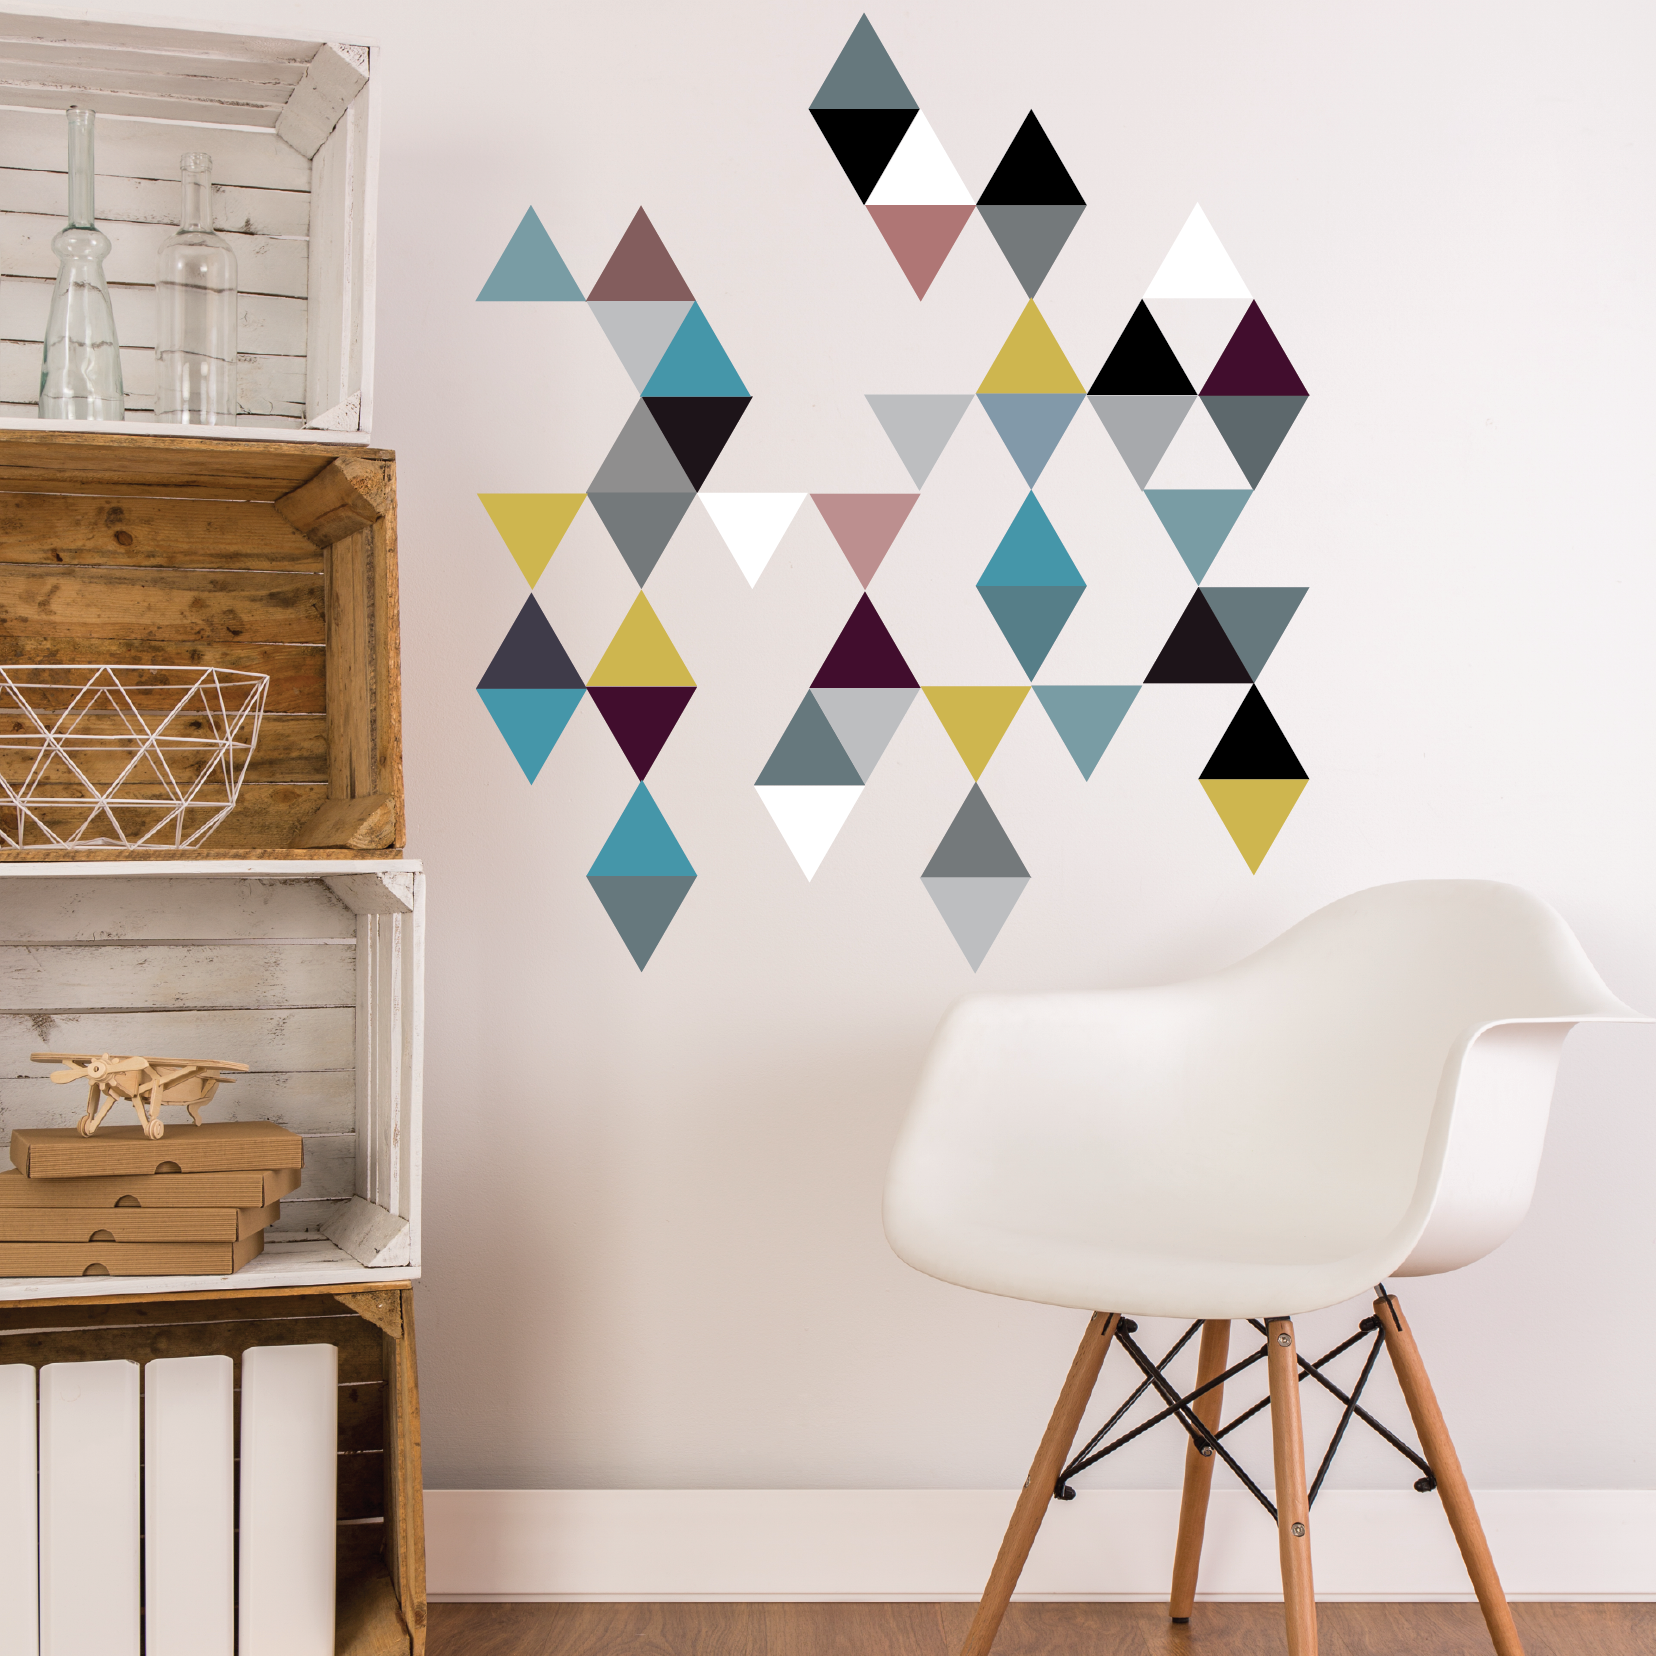 45 modern art triangle wall decals color 2 eco friendly peel and stick fabric